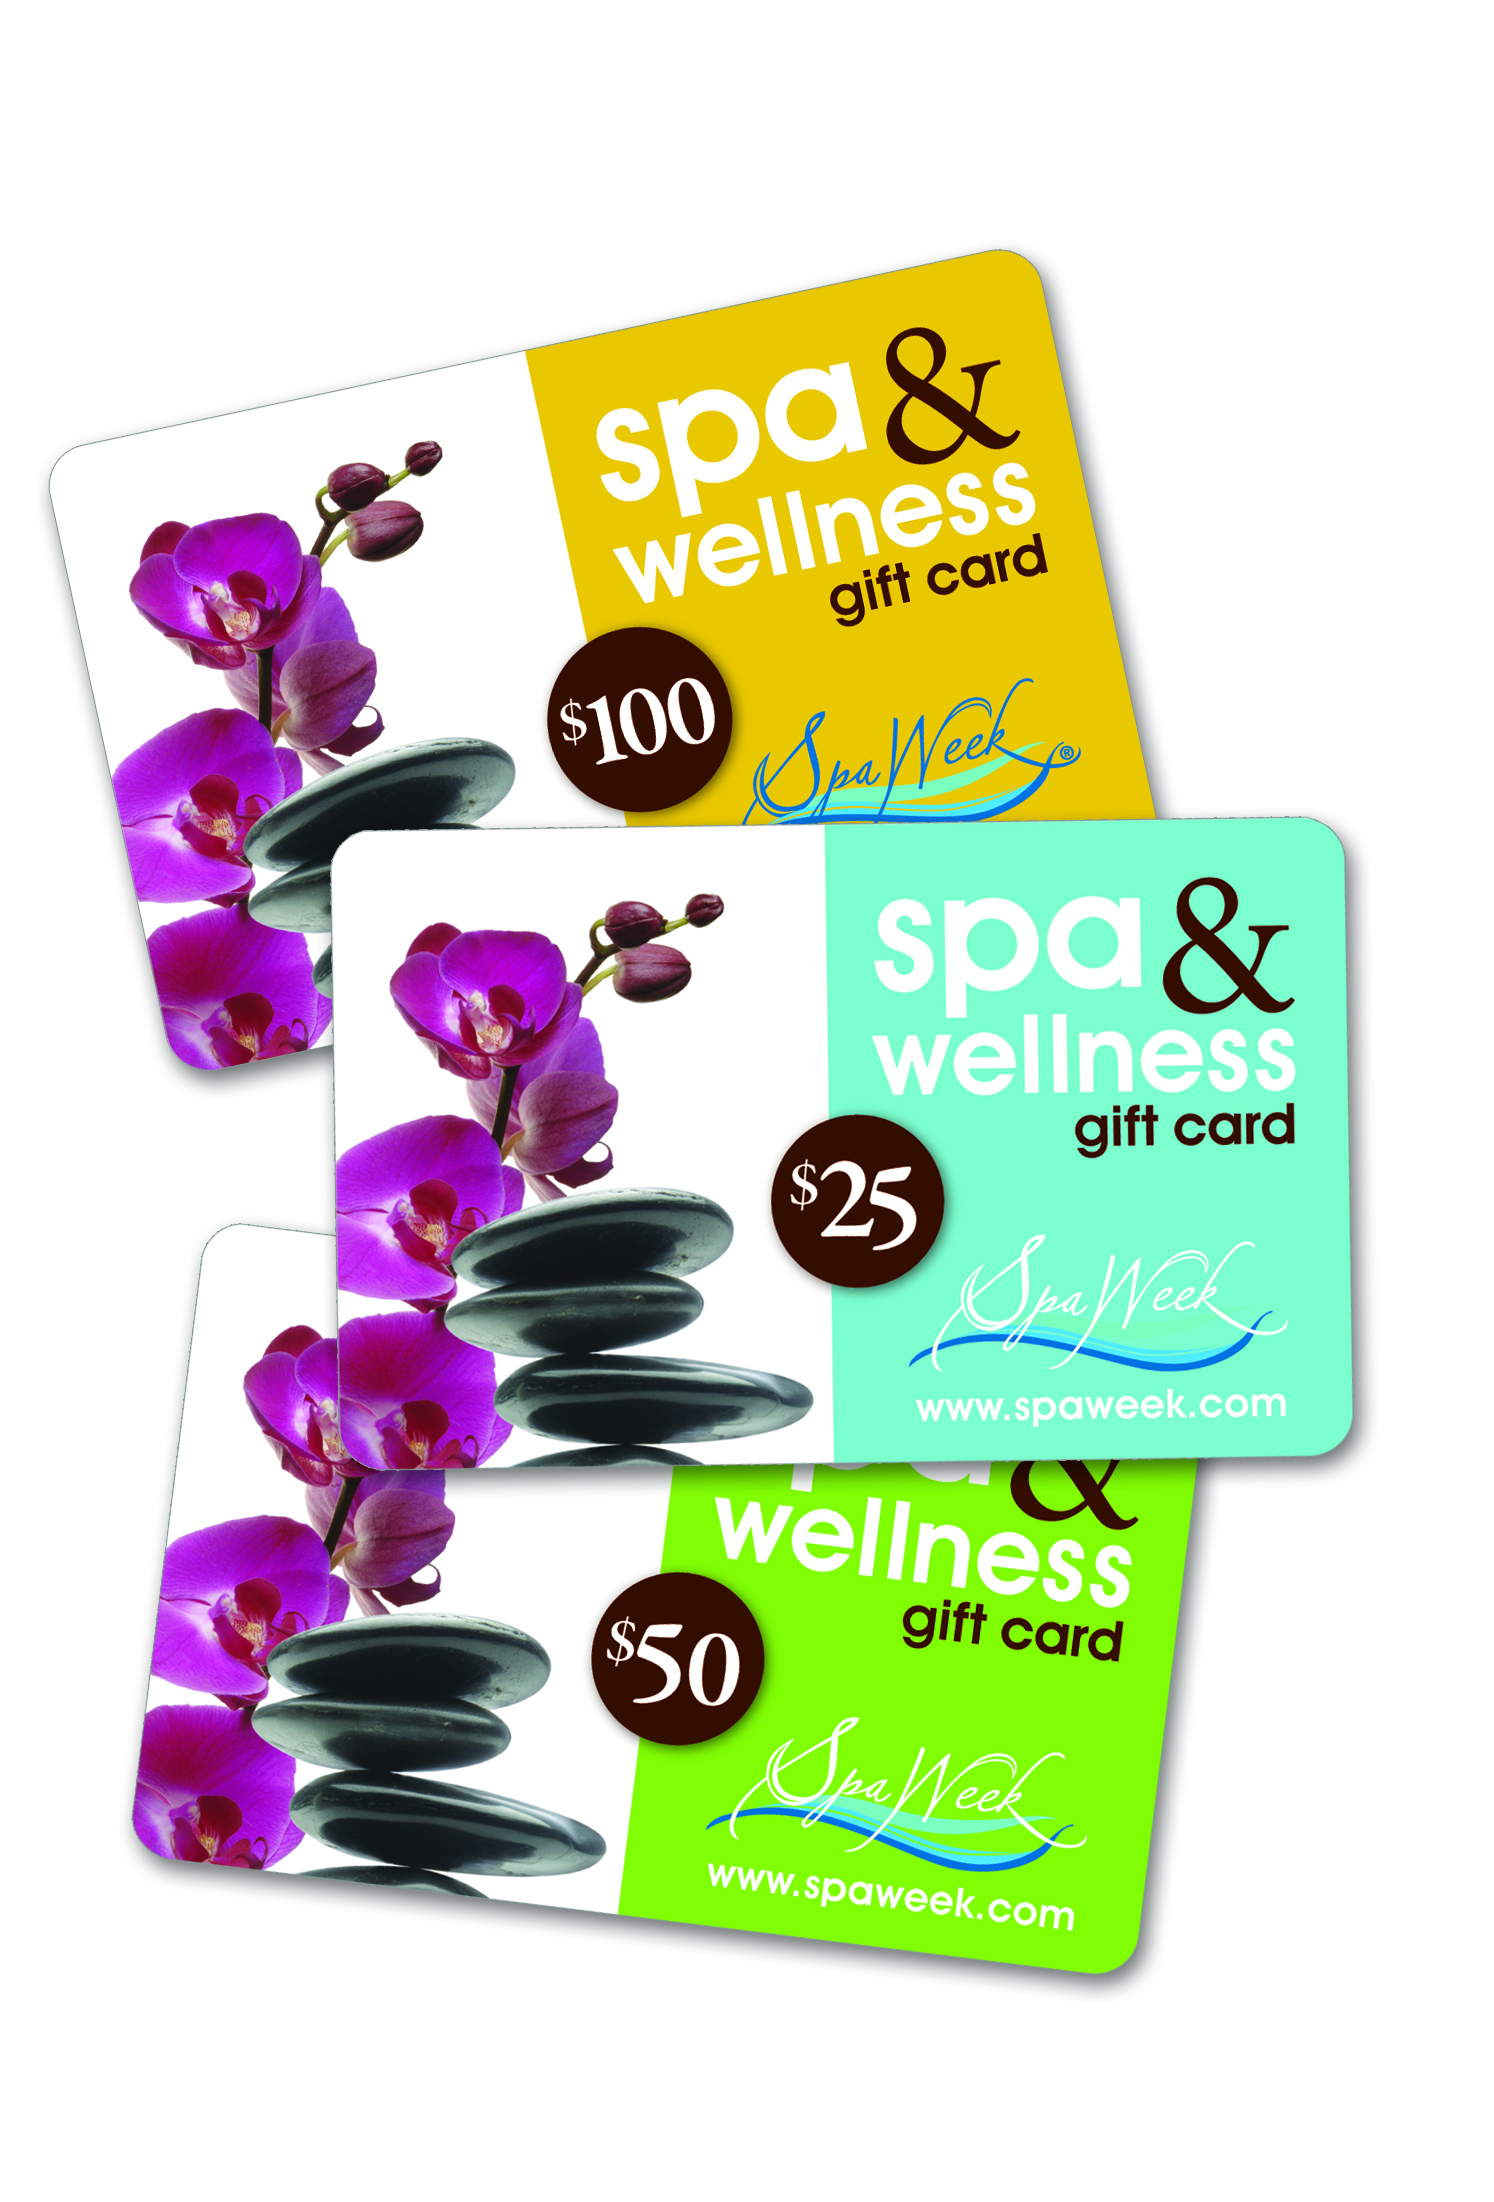 MASSAGE Magazine Readers Receive Special Holiday Discount on Spa & Wellness Gift Cards from Spa Week, MASSAGE Magazine